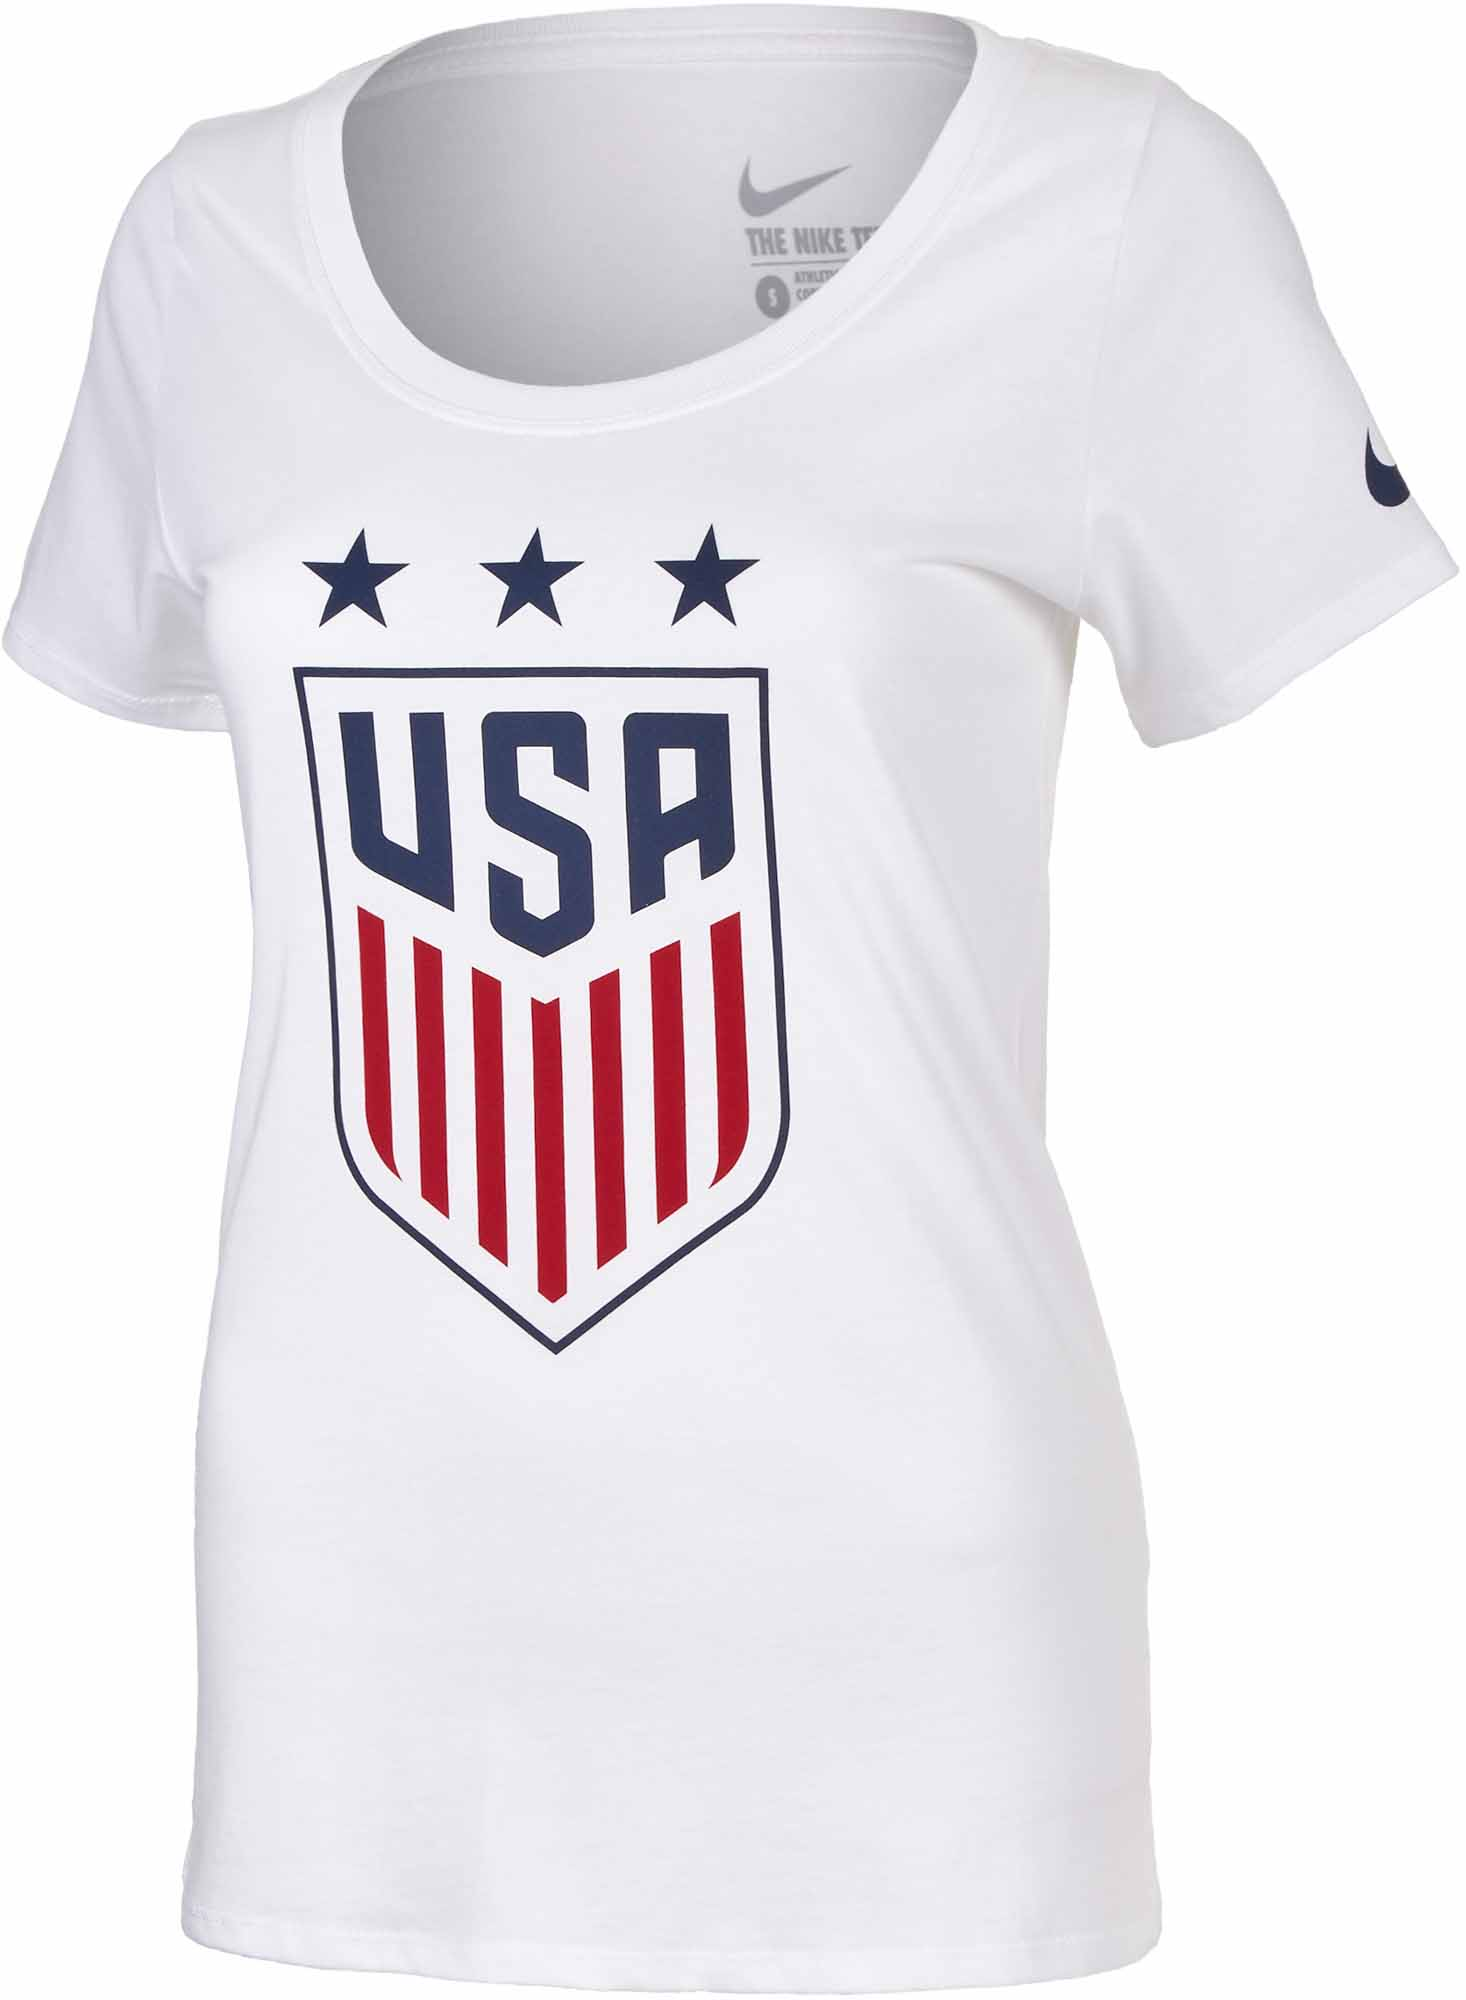 6f7af0bc209 Usa Soccer Crest T Shirt – EDGE Engineering and Consulting Limited